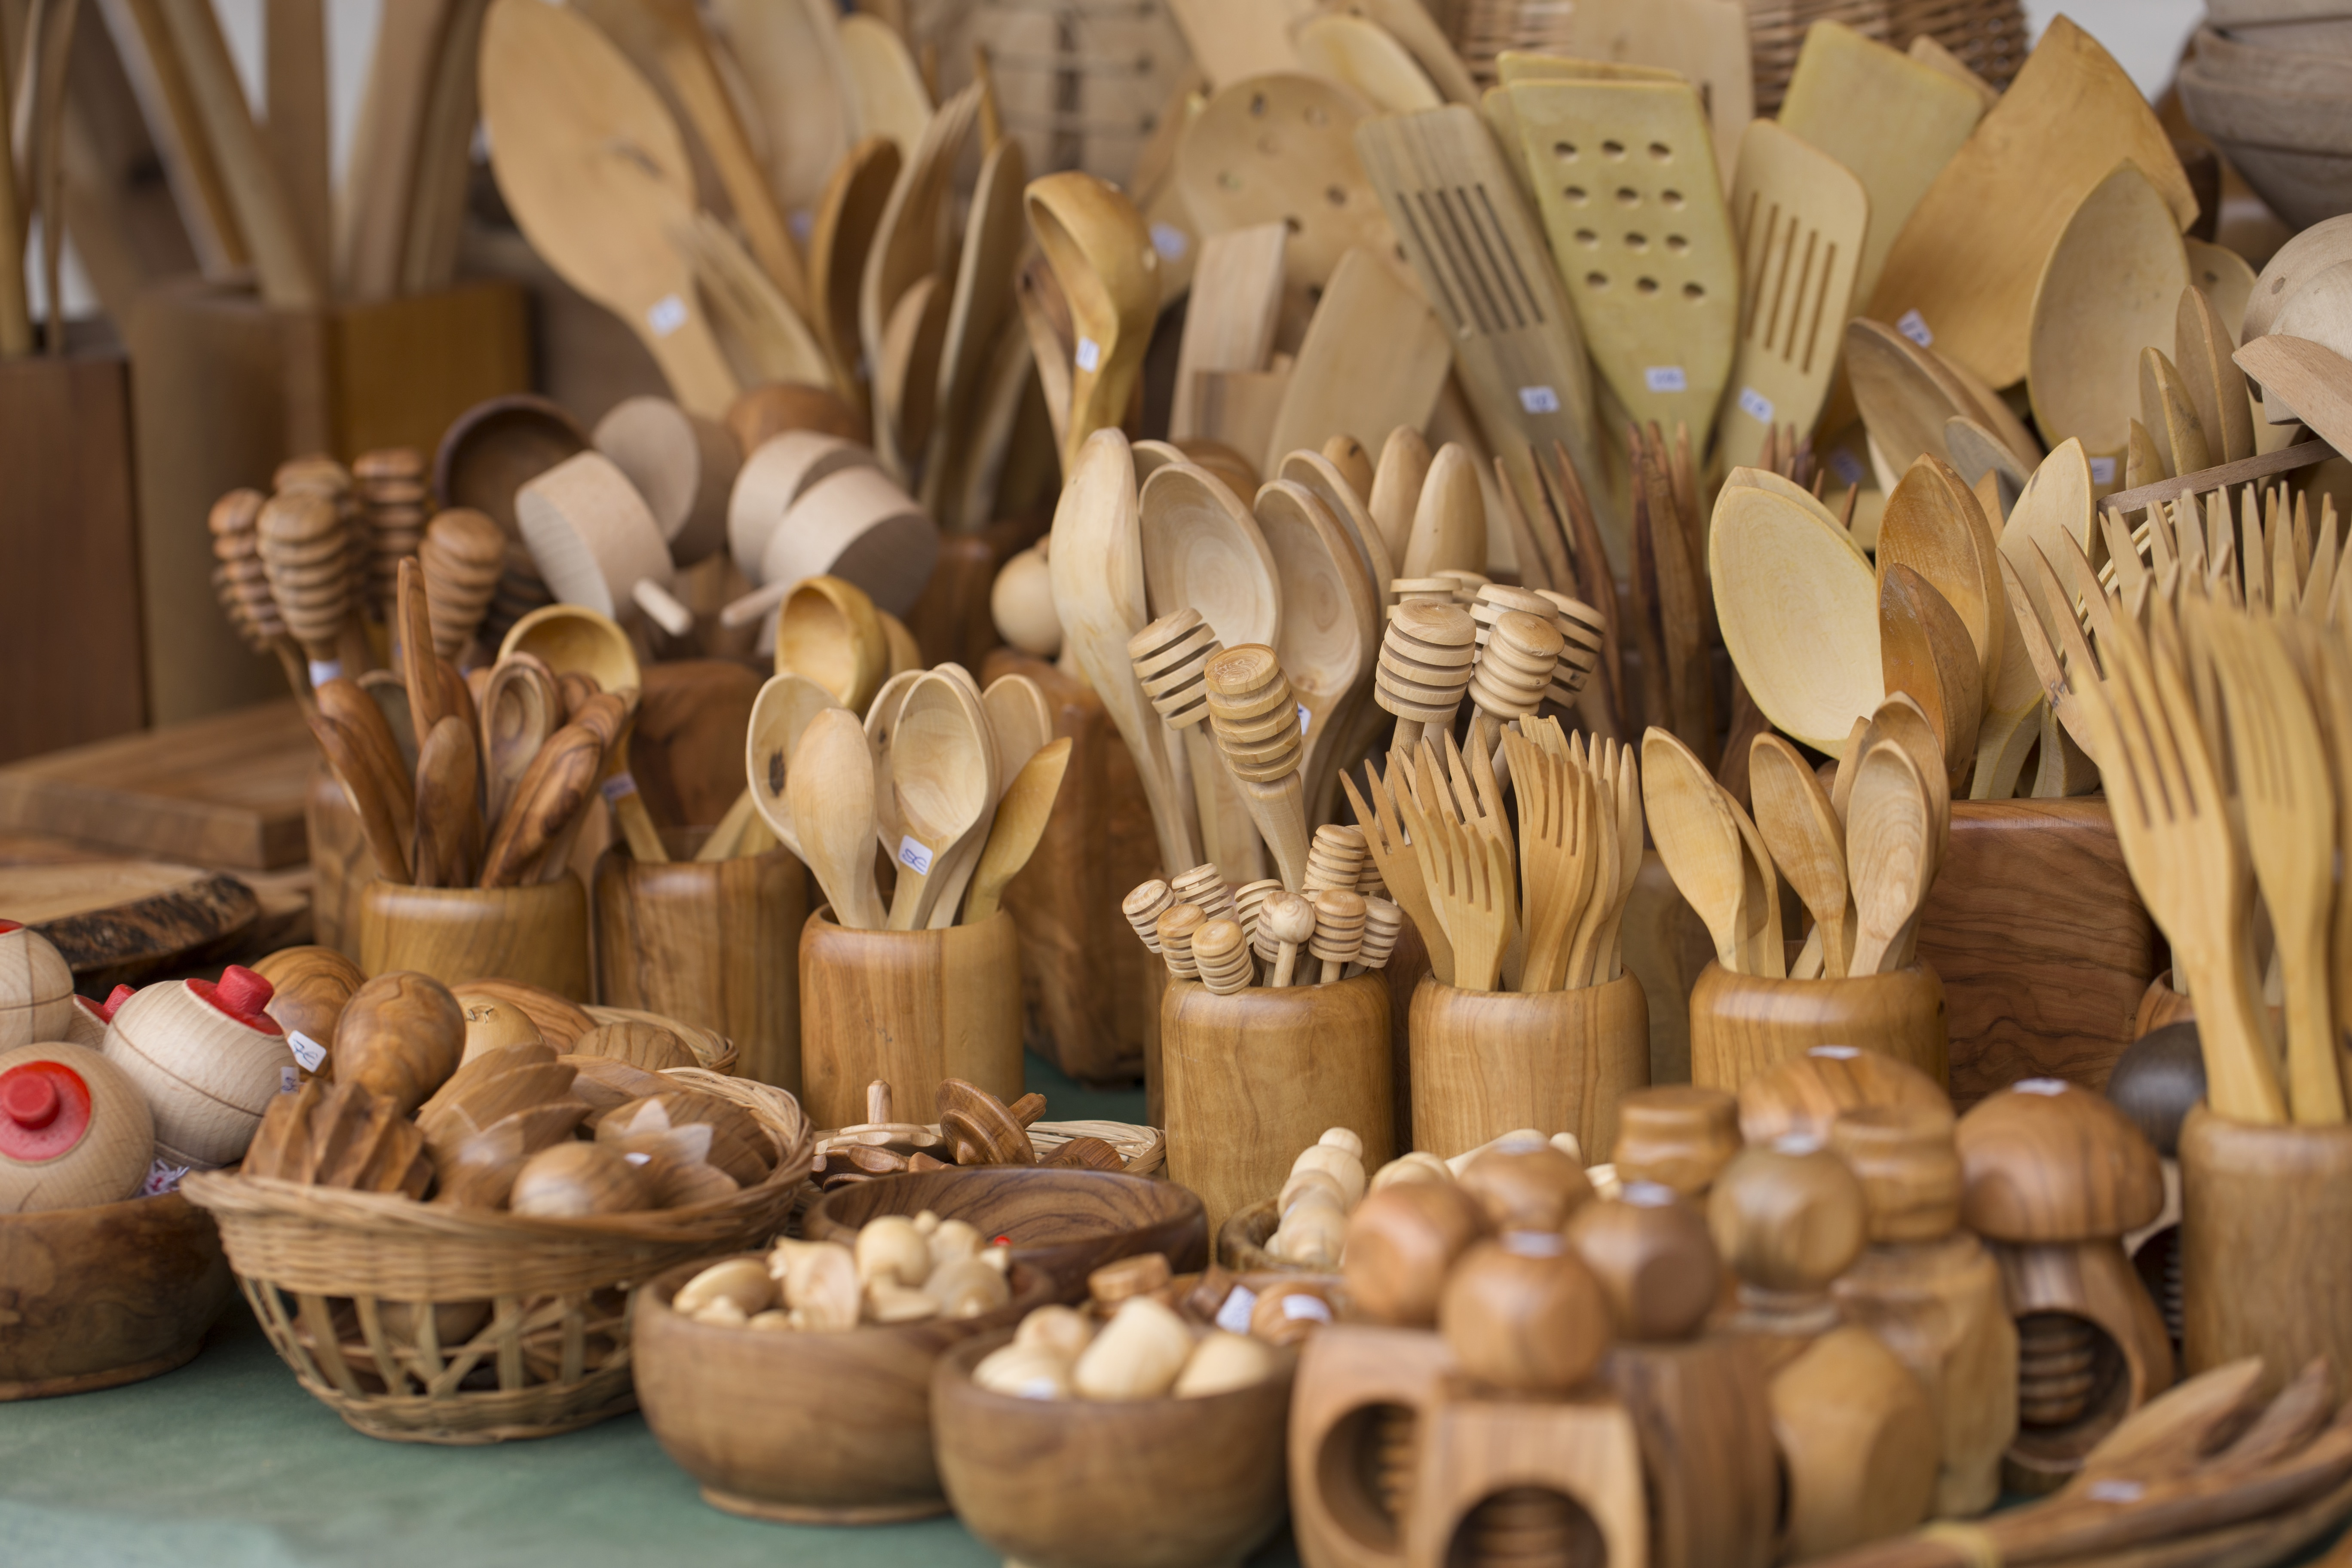 Wooden crafts on display at craft fair